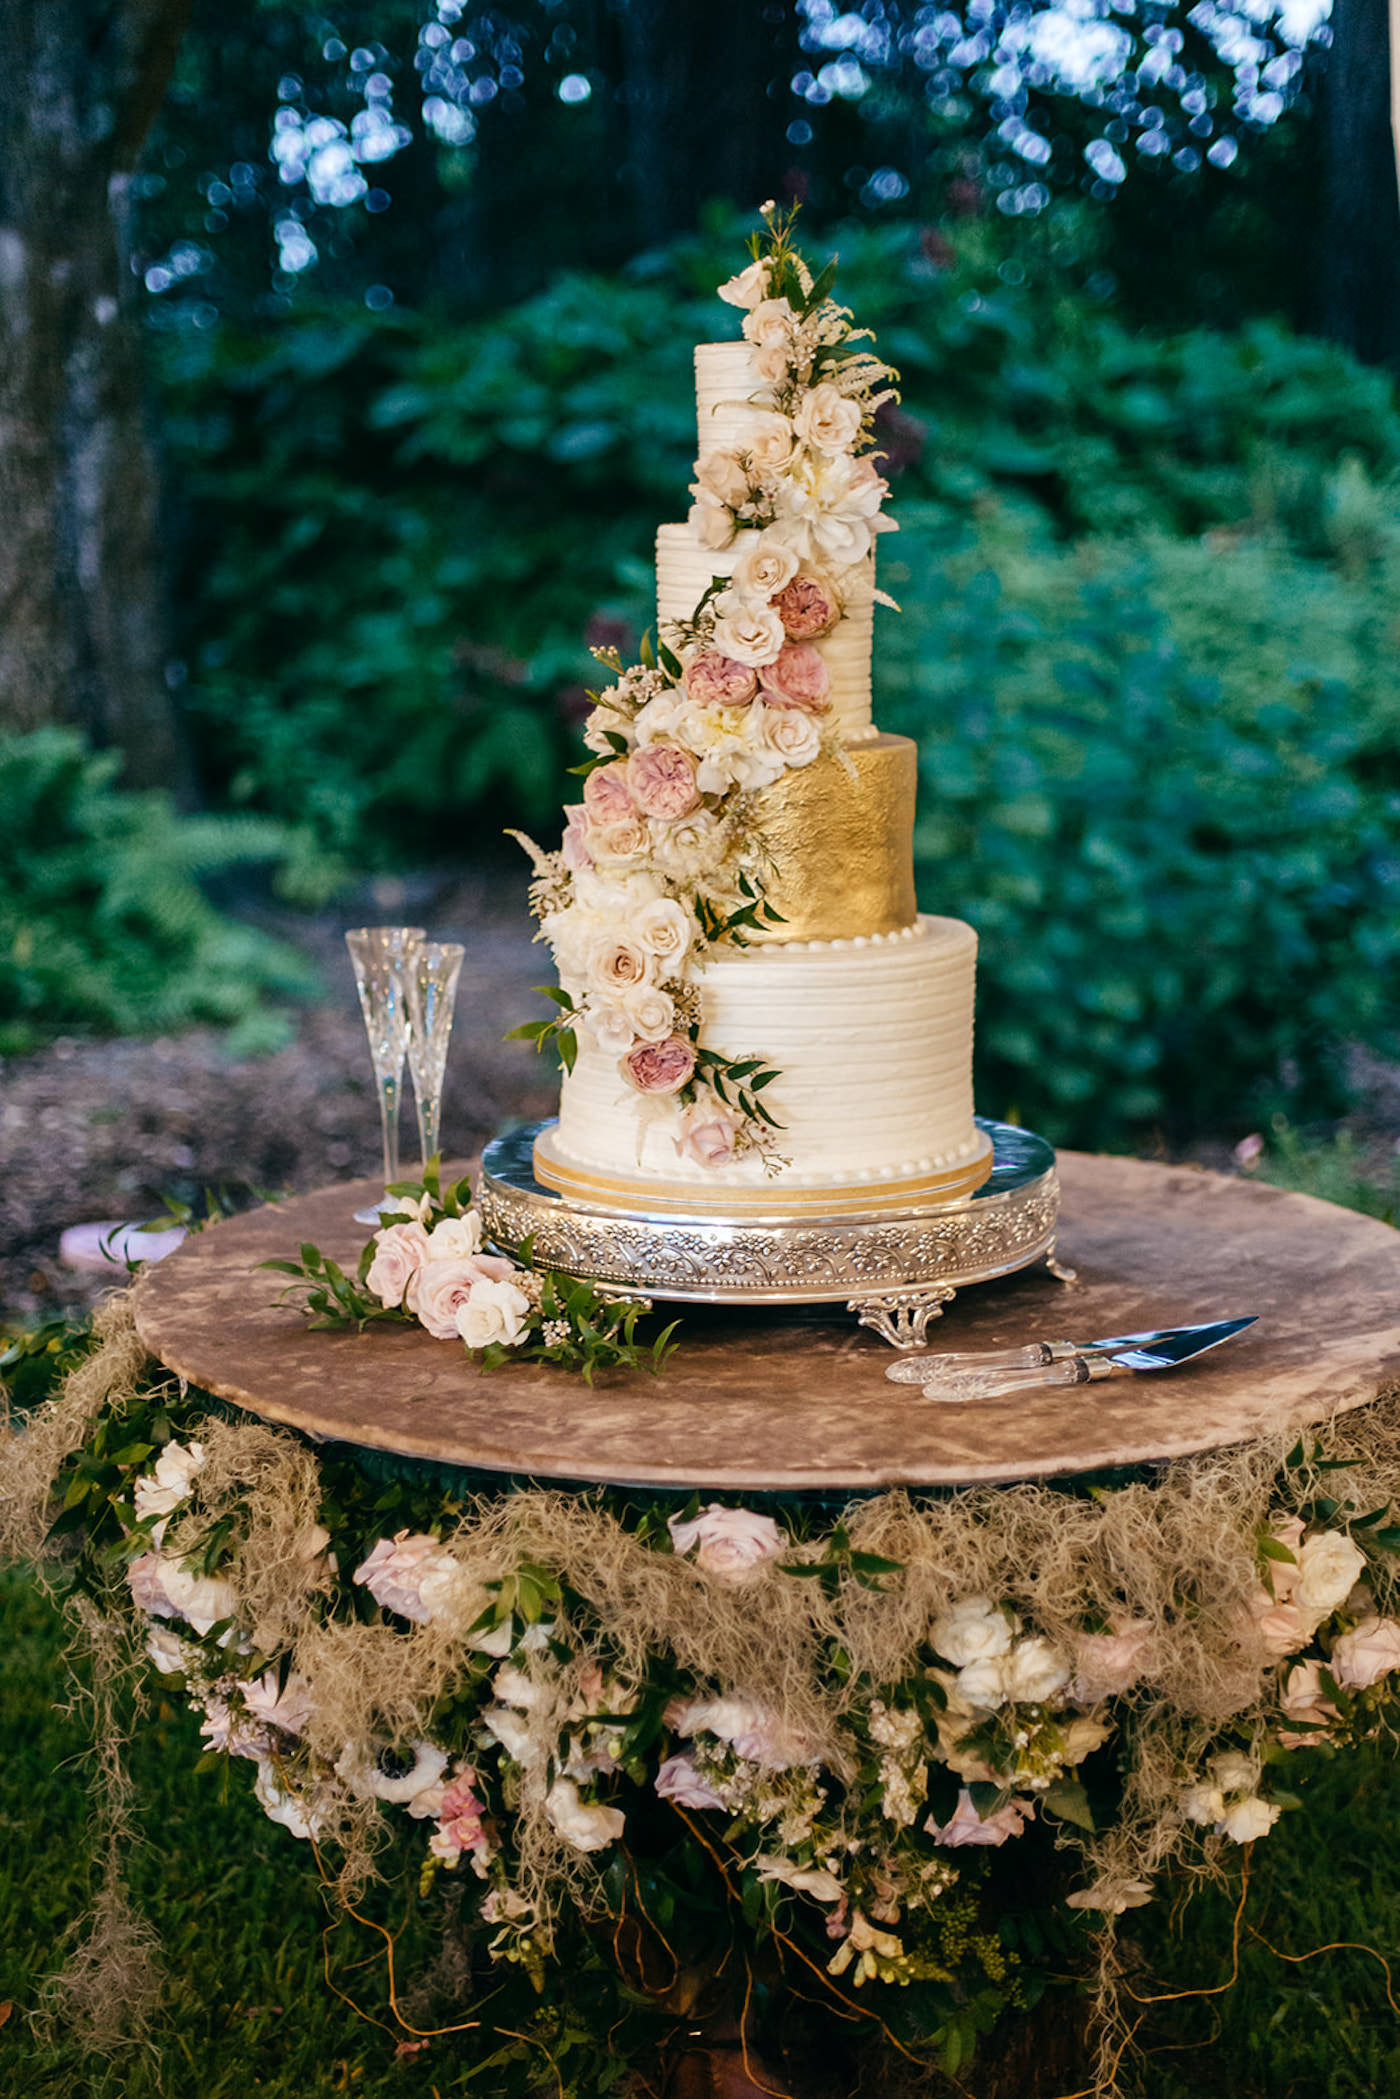 Romantic, Garden Inspired Wedding Cake, 5 Tier Wedding Cake for 200, Gold Icing, Floral Accents with Blush Pink Roses and Ivory Flowers Cascading Down the Cake, Cake Table Decorated with Greenery and Banyan Tree Moss   Florida Wedding Planner NK Weddings